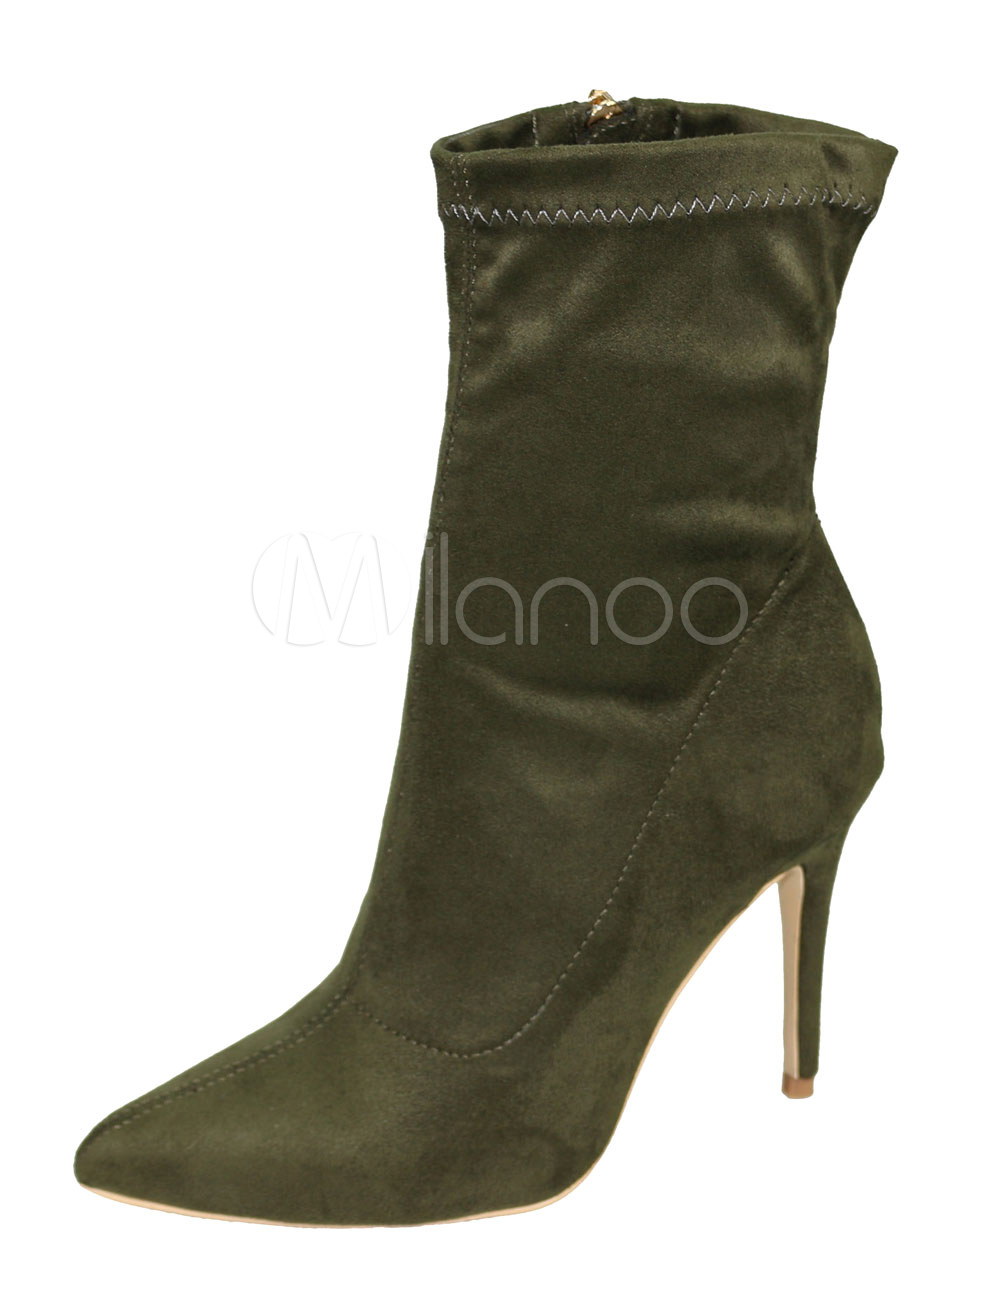 Stretch Ankle Boots High Heel Hunter Green Zip Up Stiletto Heel Pointed Toe Booties